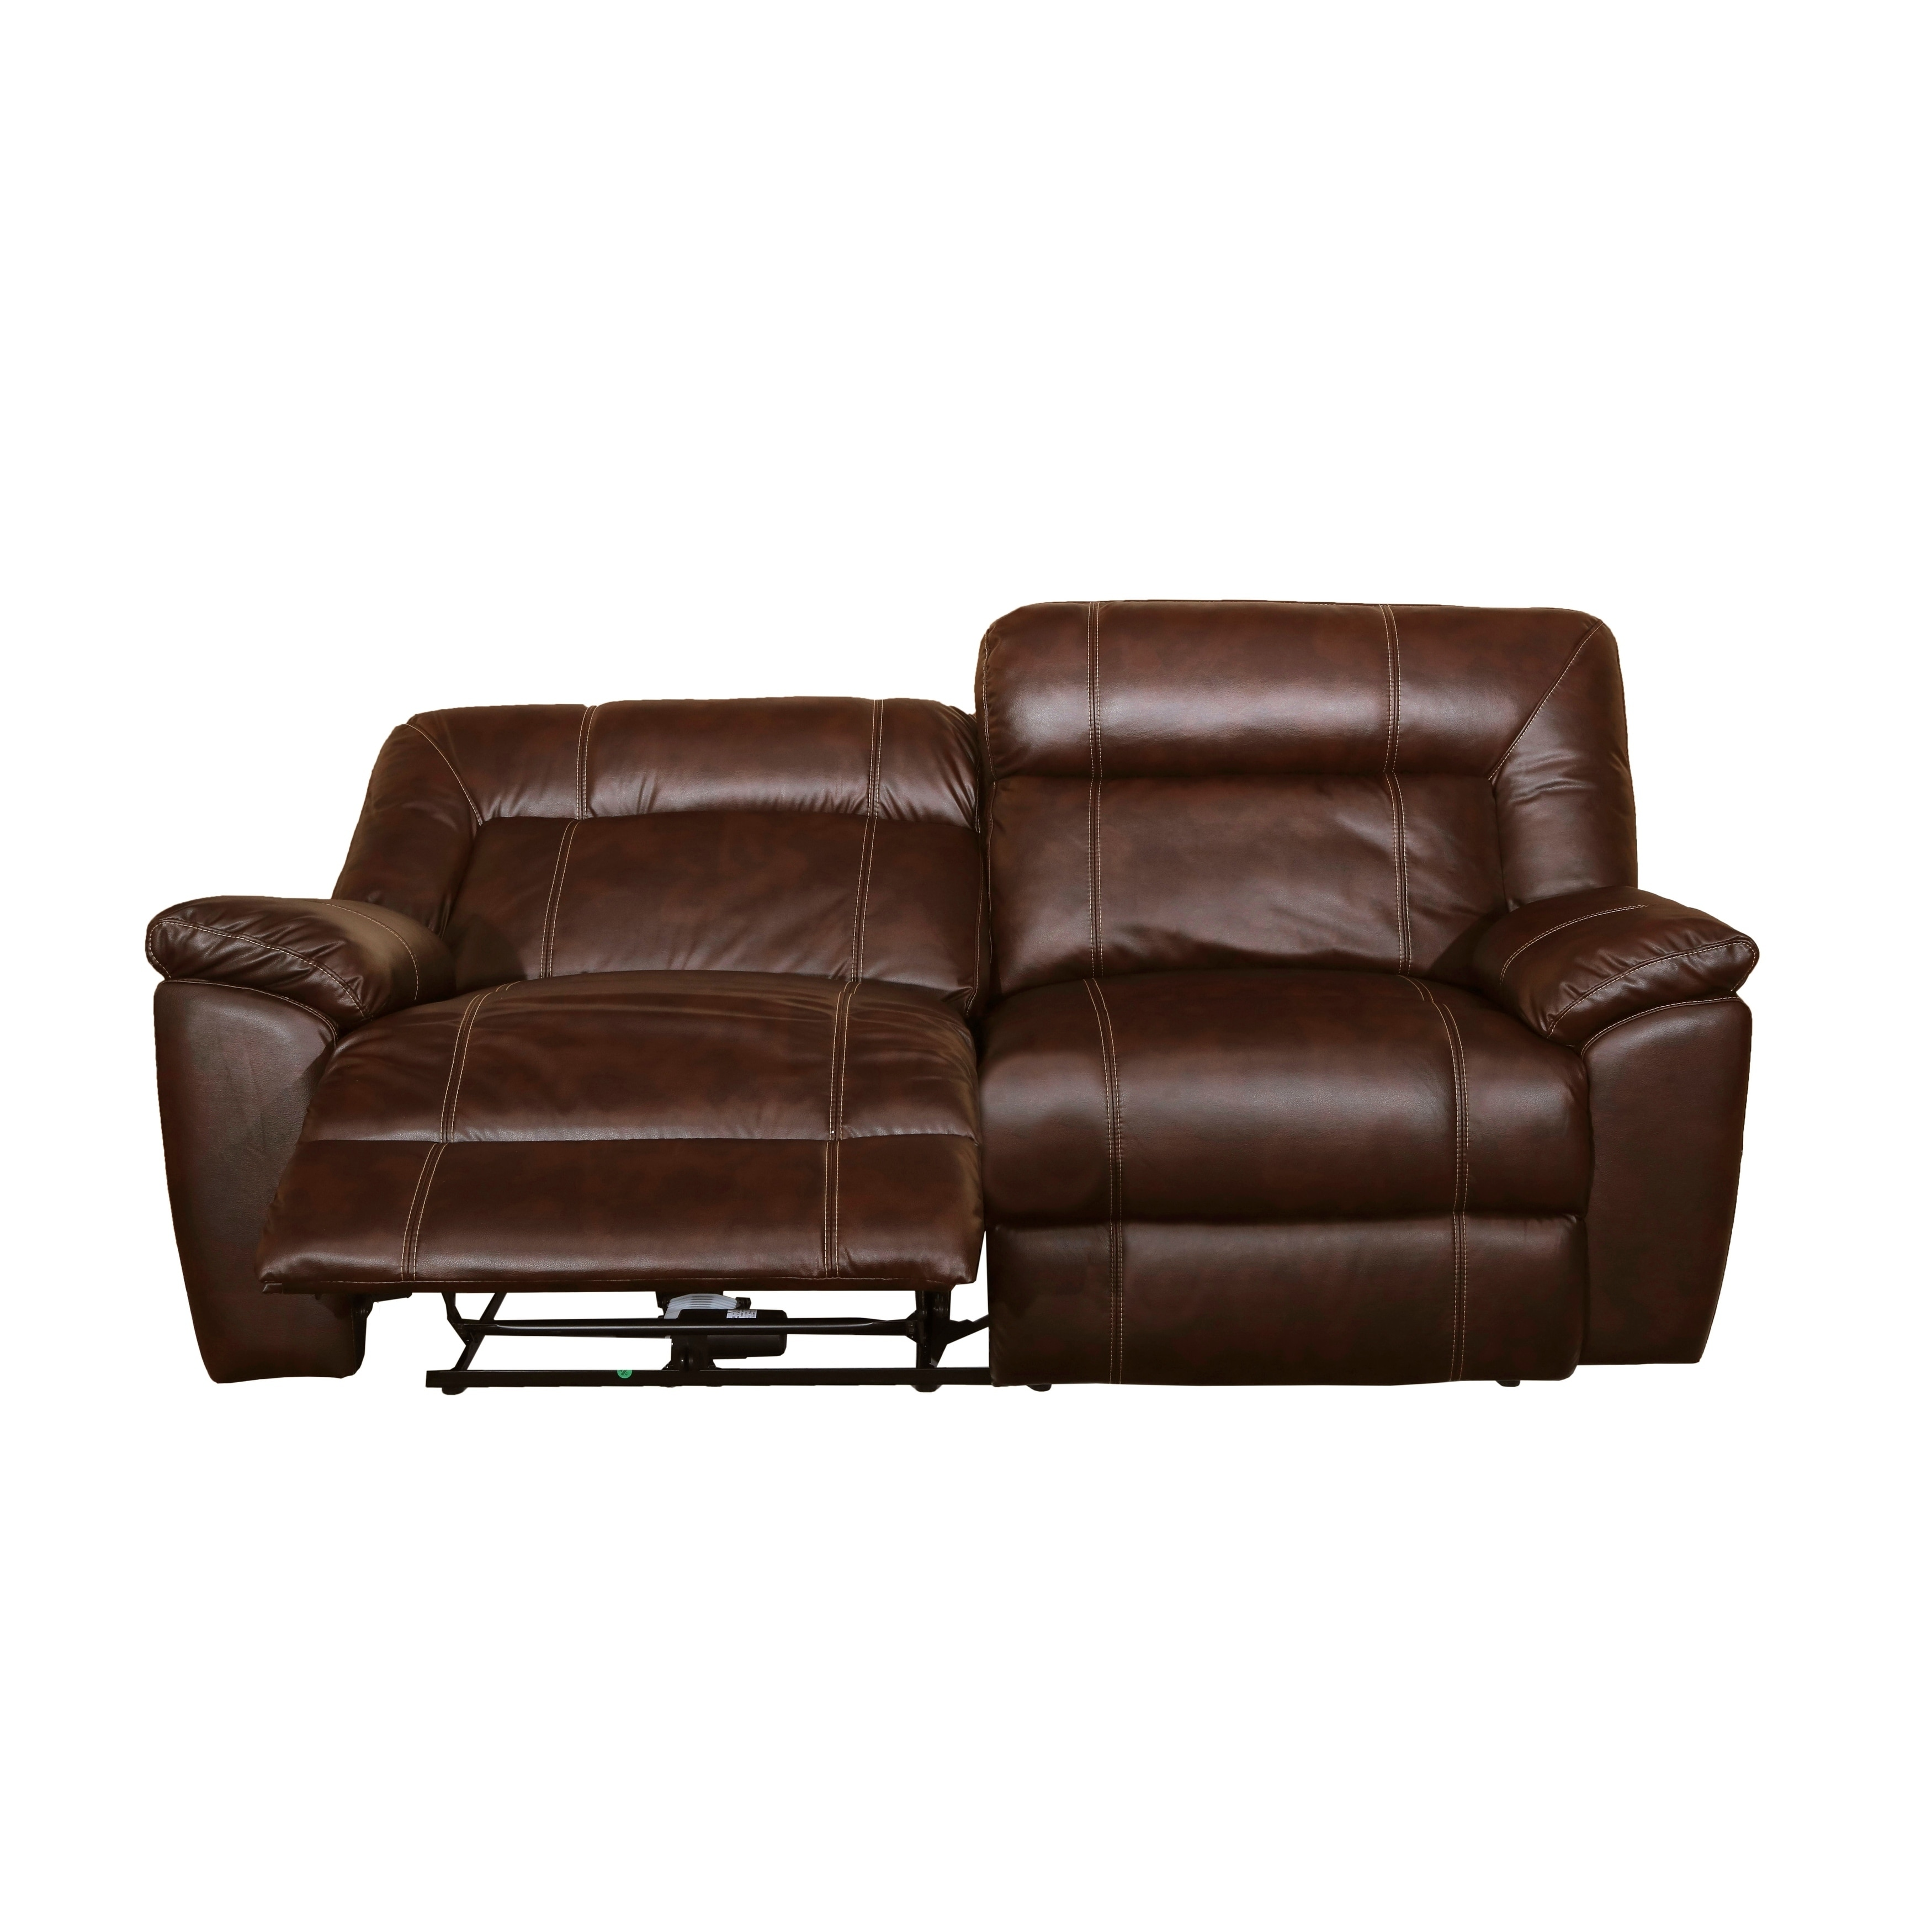 cuddler room recliner softie way chair polyester recliners inch chaise chairs furniture pin a pinterest catnapper living oversized